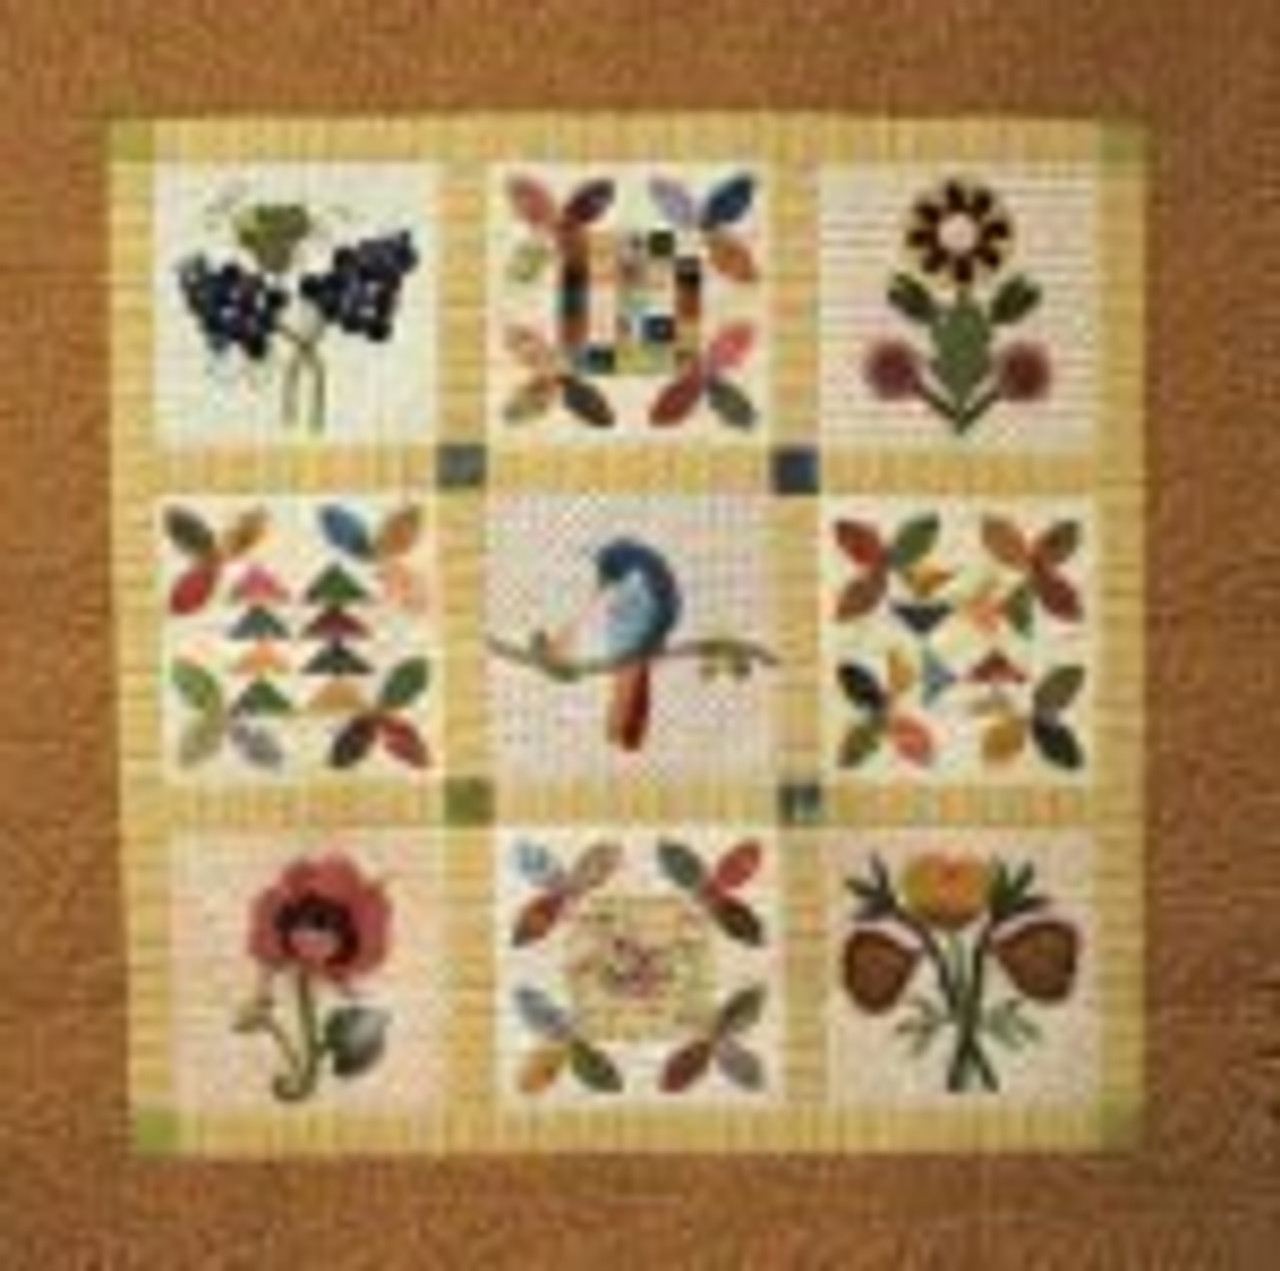 Veronique's Quilt Designs: Little Wattlebird